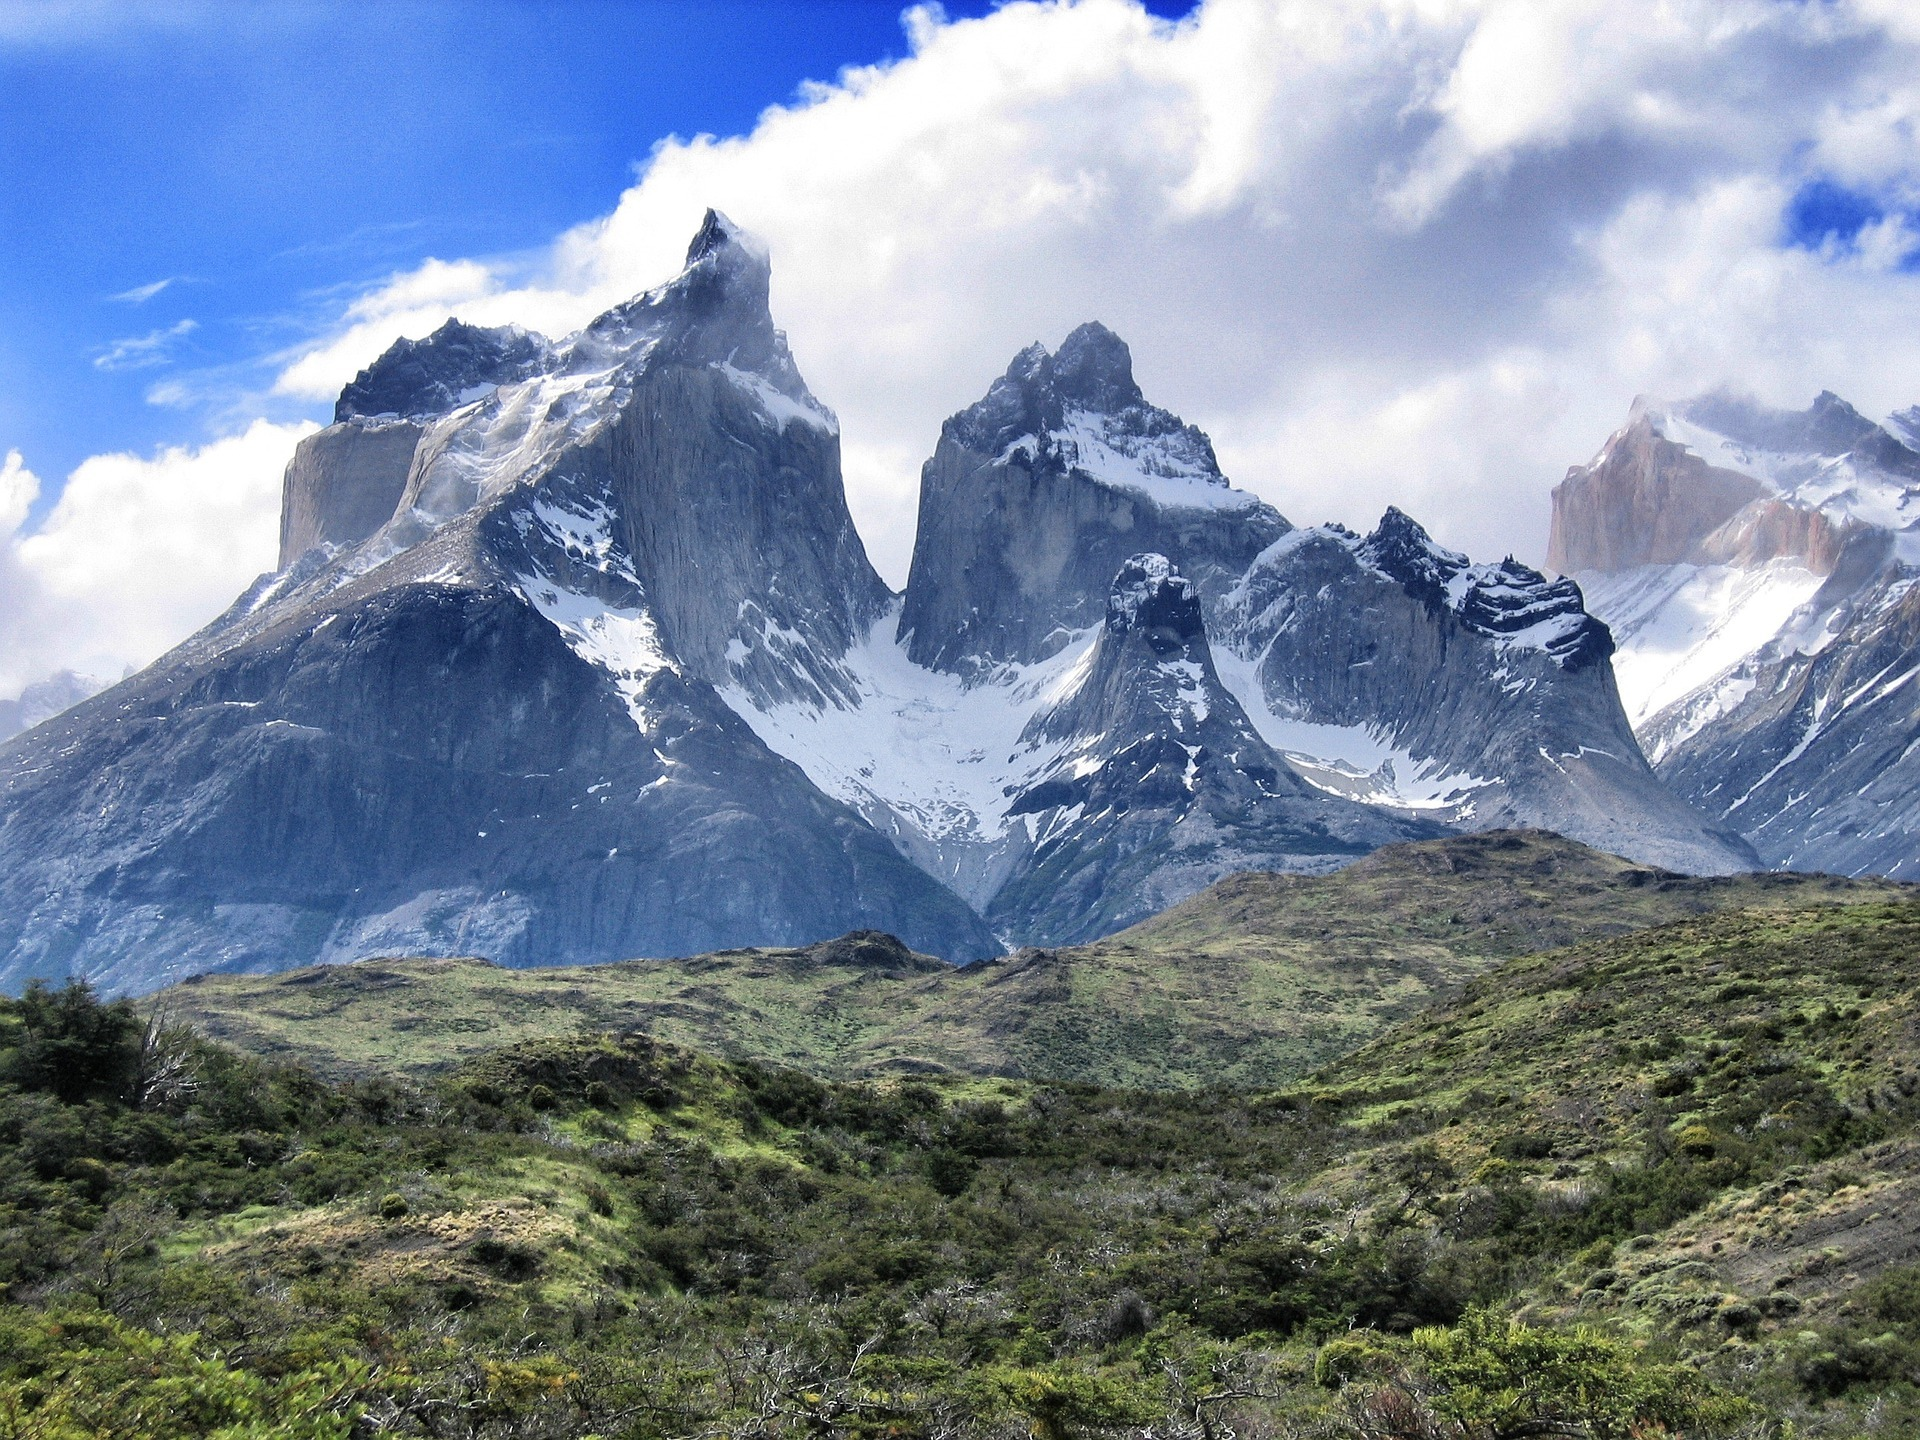 Dreaming of South America - By Megan Kelly